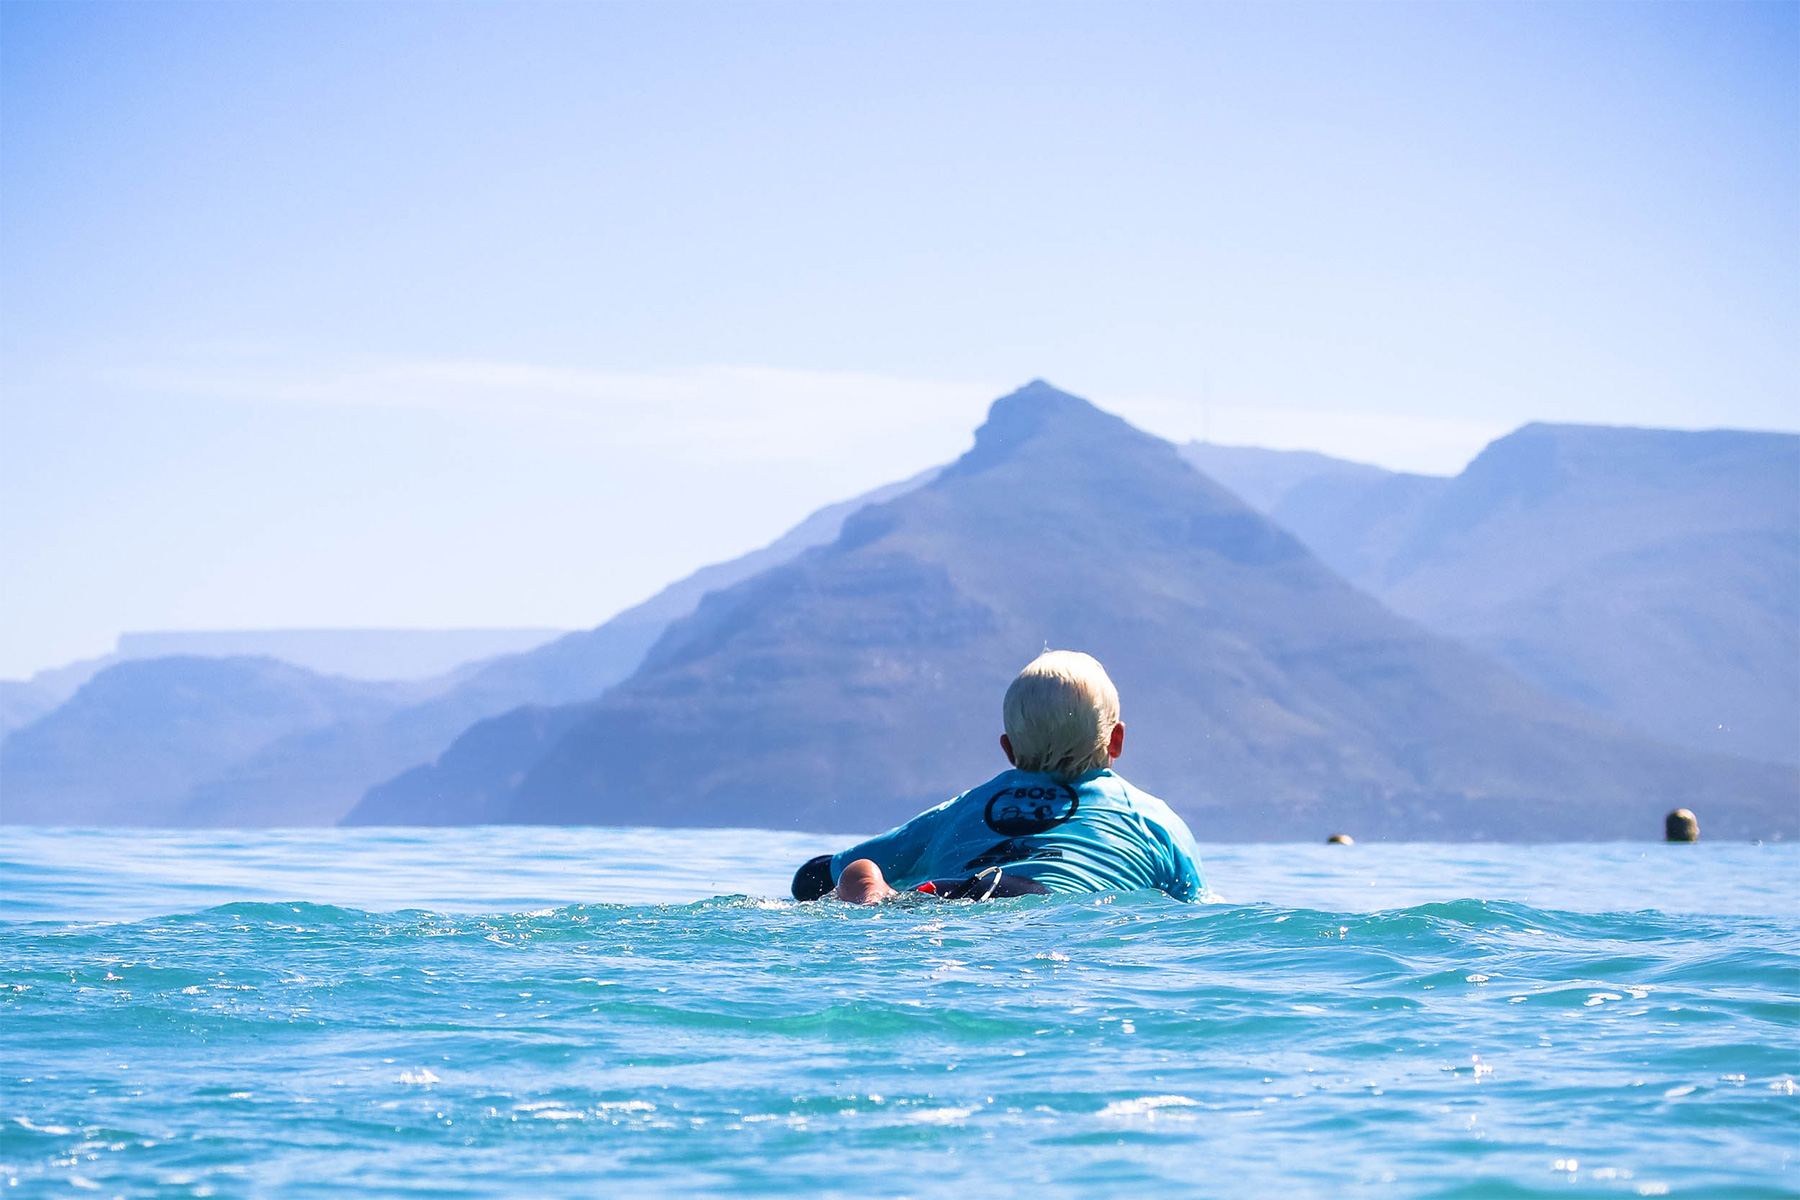 surfer dan emslie in a surf contest in cape town photographed by ian thurtell